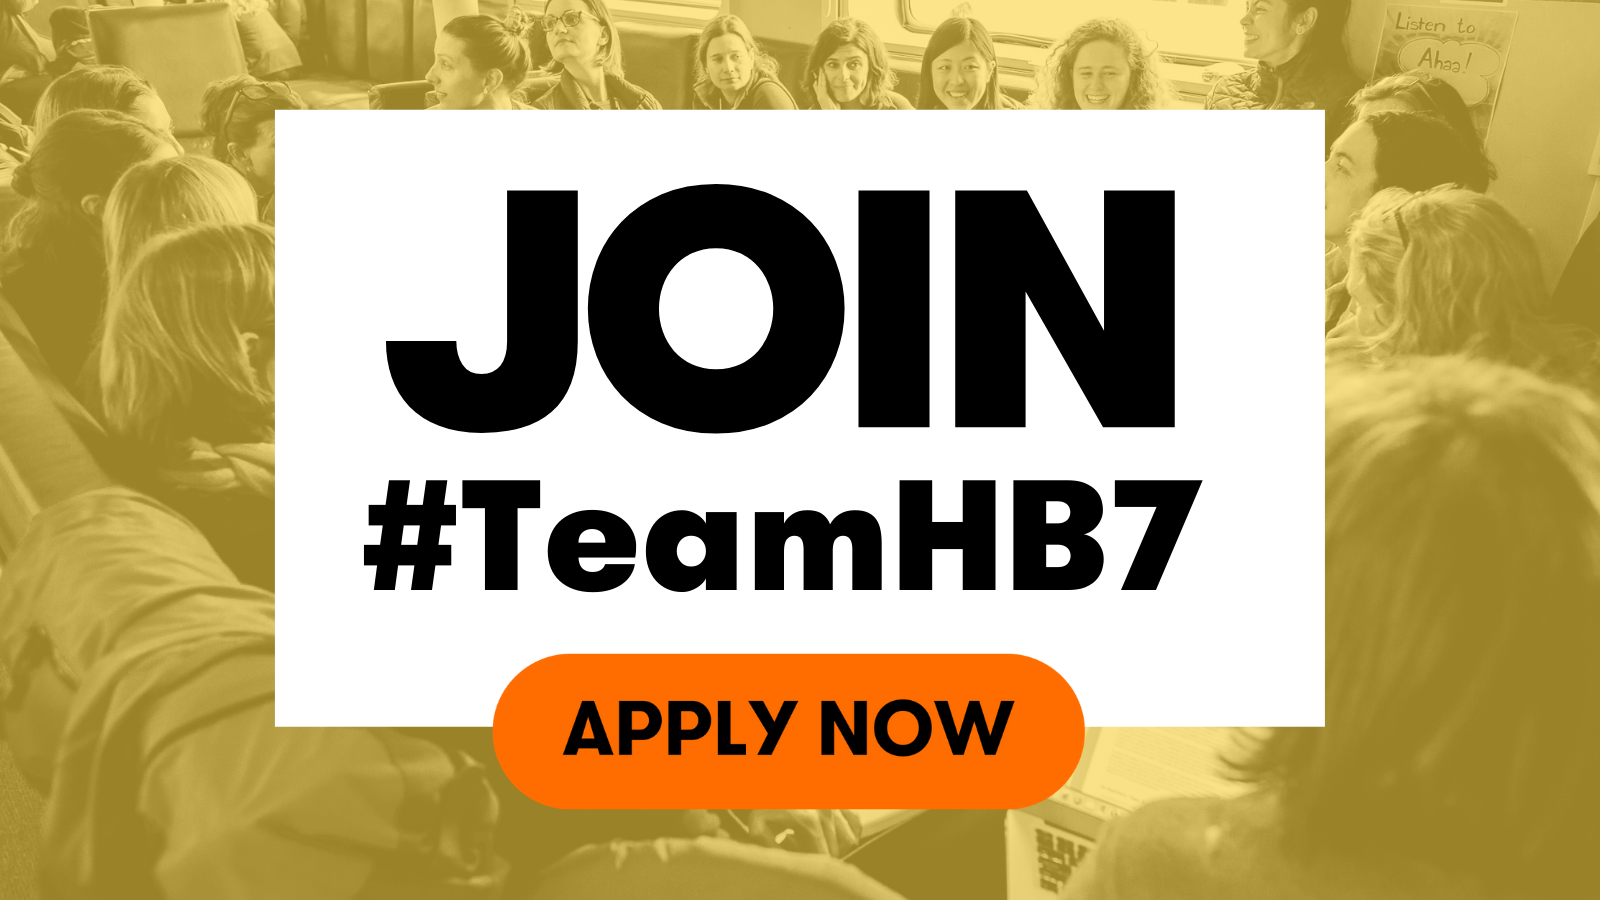 JOIN TEAM HB7